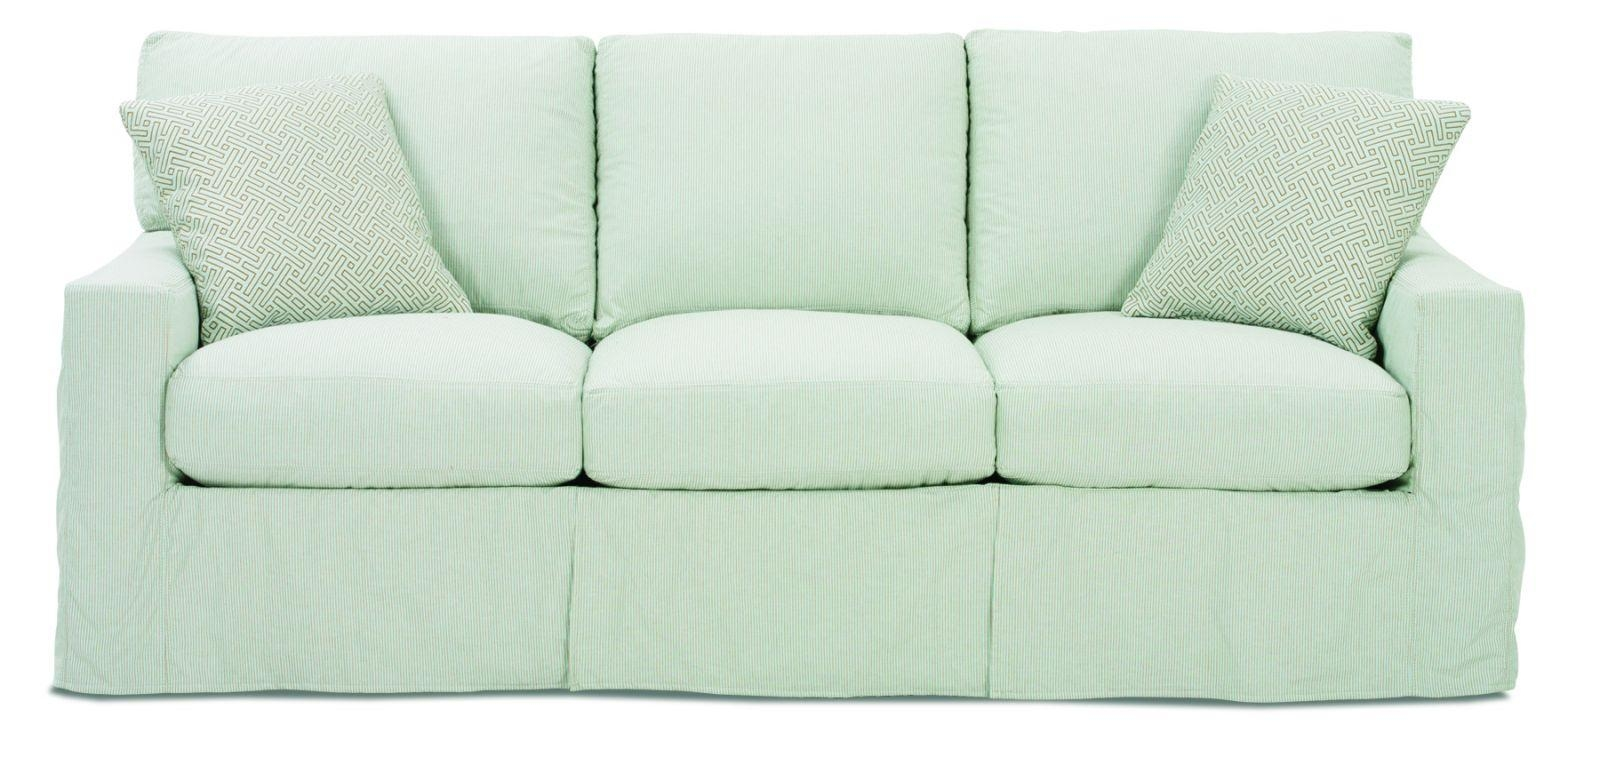 Slipcover Patterns For Sofas – Slipcover Sofas For Instant Fresh Throughout Slipcover Style Sofas (Image 11 of 20)